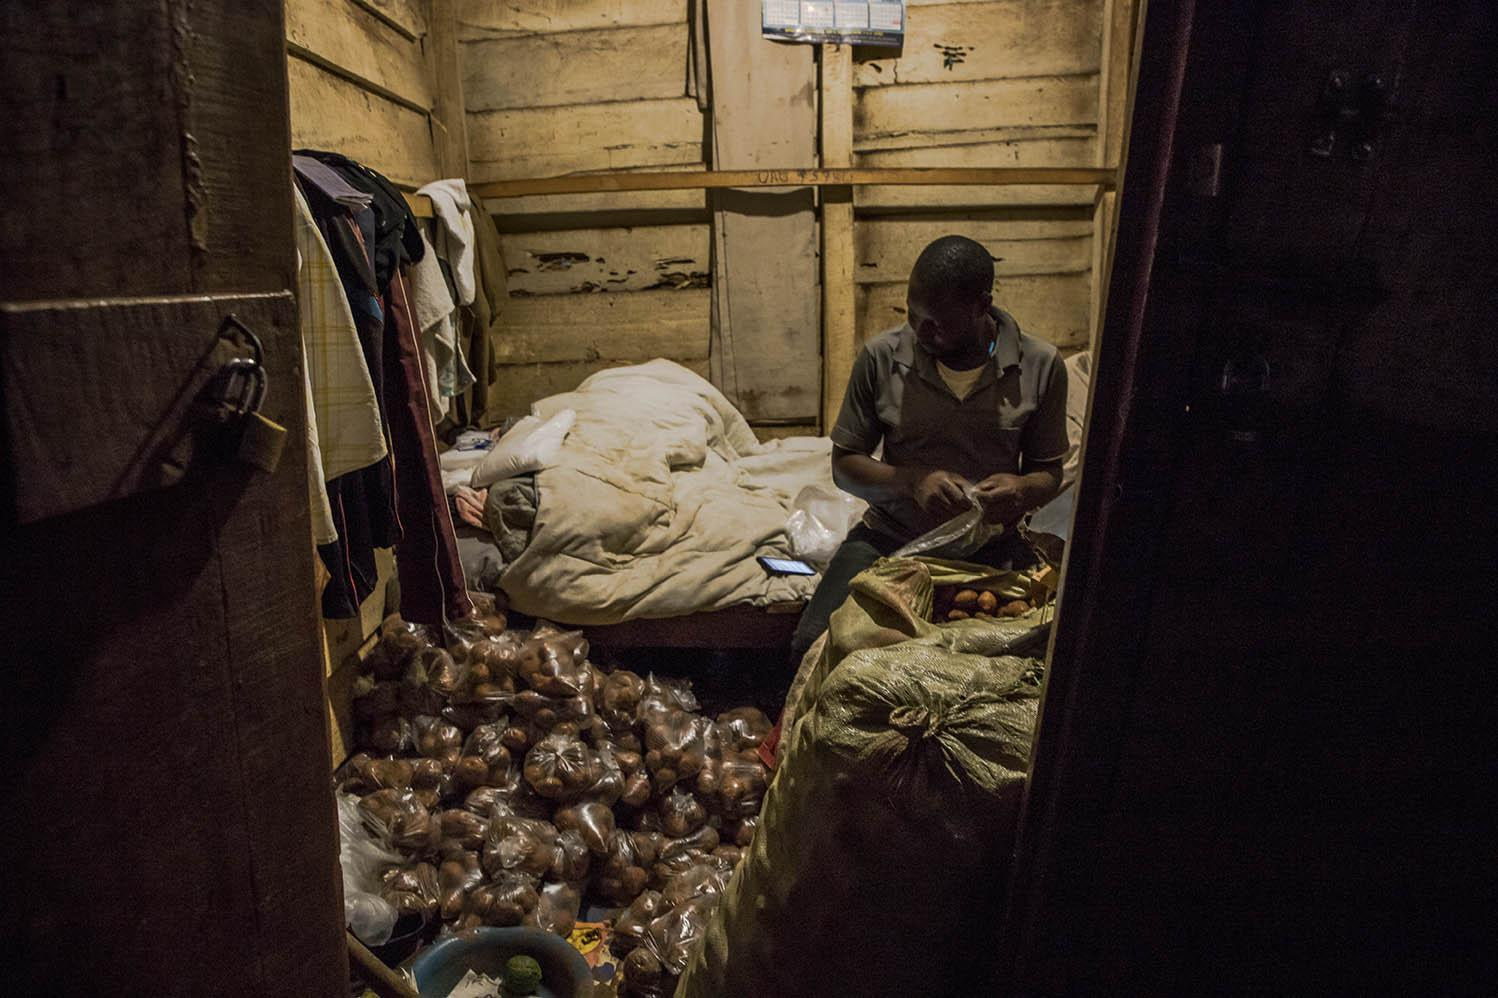 Kasule Francis, a famous Nakawa Market vendor in Kampala, Uganda, prepares and packs Irish potatoes in small polythene bags on 7 April 2020. Due to the COVID-19 pandemic, what used to be his food store is now a sleeping room and stock collection area.